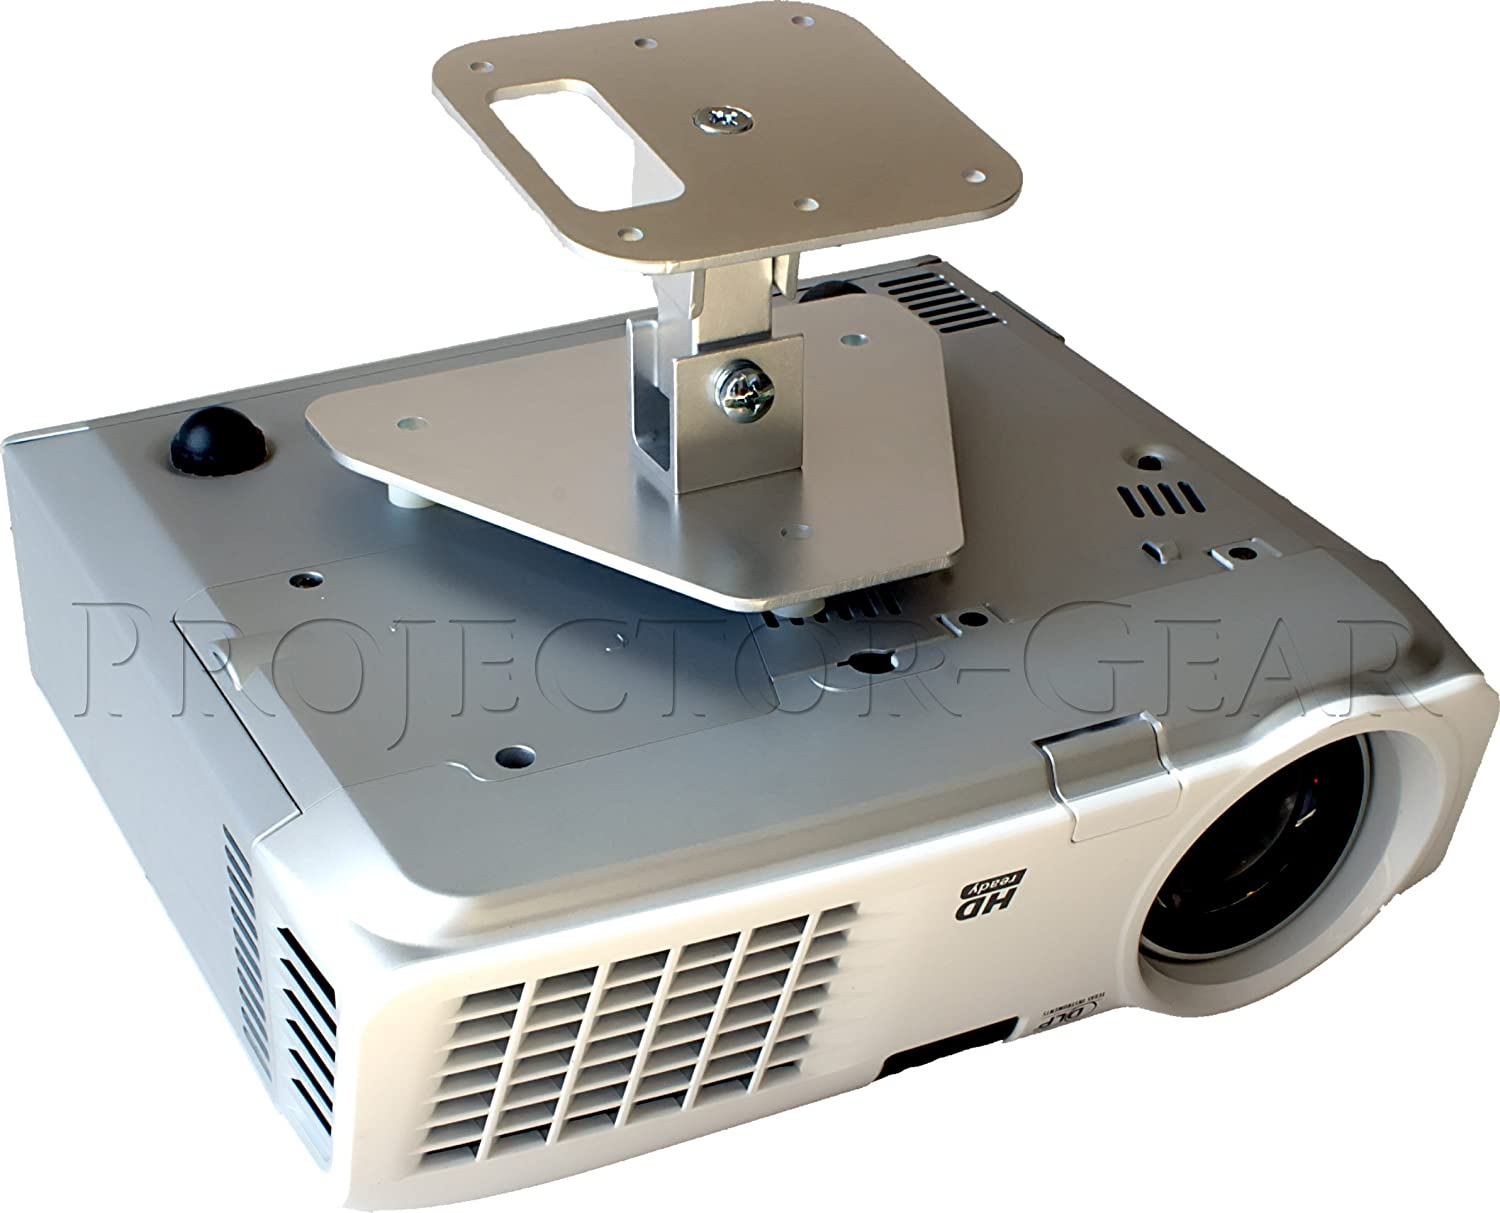 projector-gearプロジェクタ天井マウントfor OPTOMA eh415st   B0166BW1QM